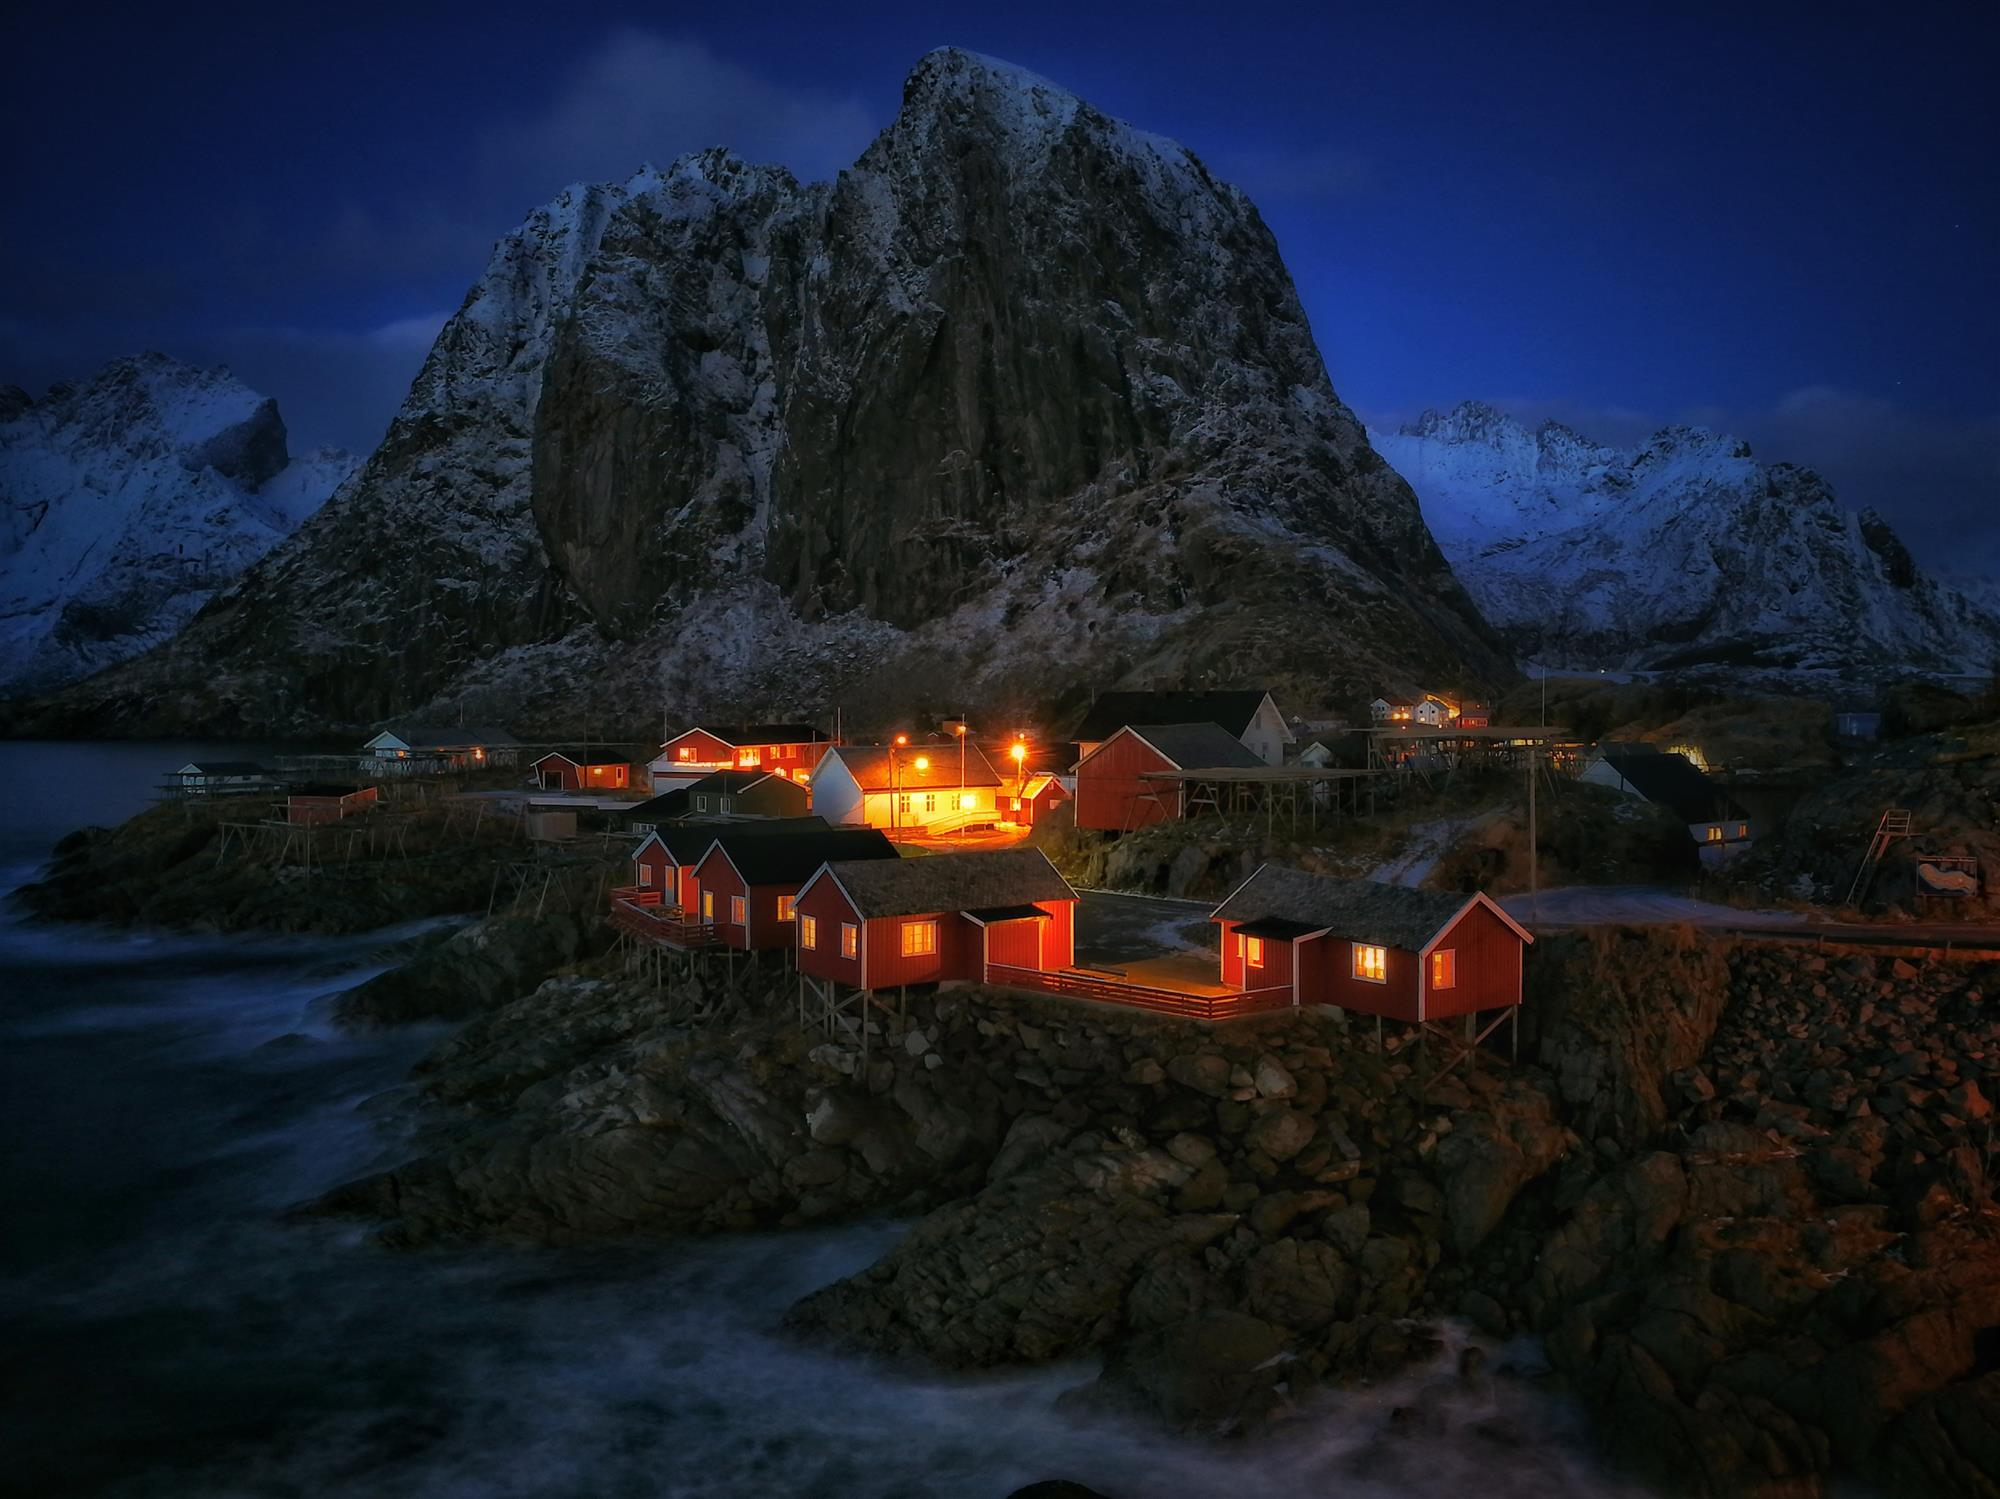 Lofoten Islands, Norway mejores fotos del 2018